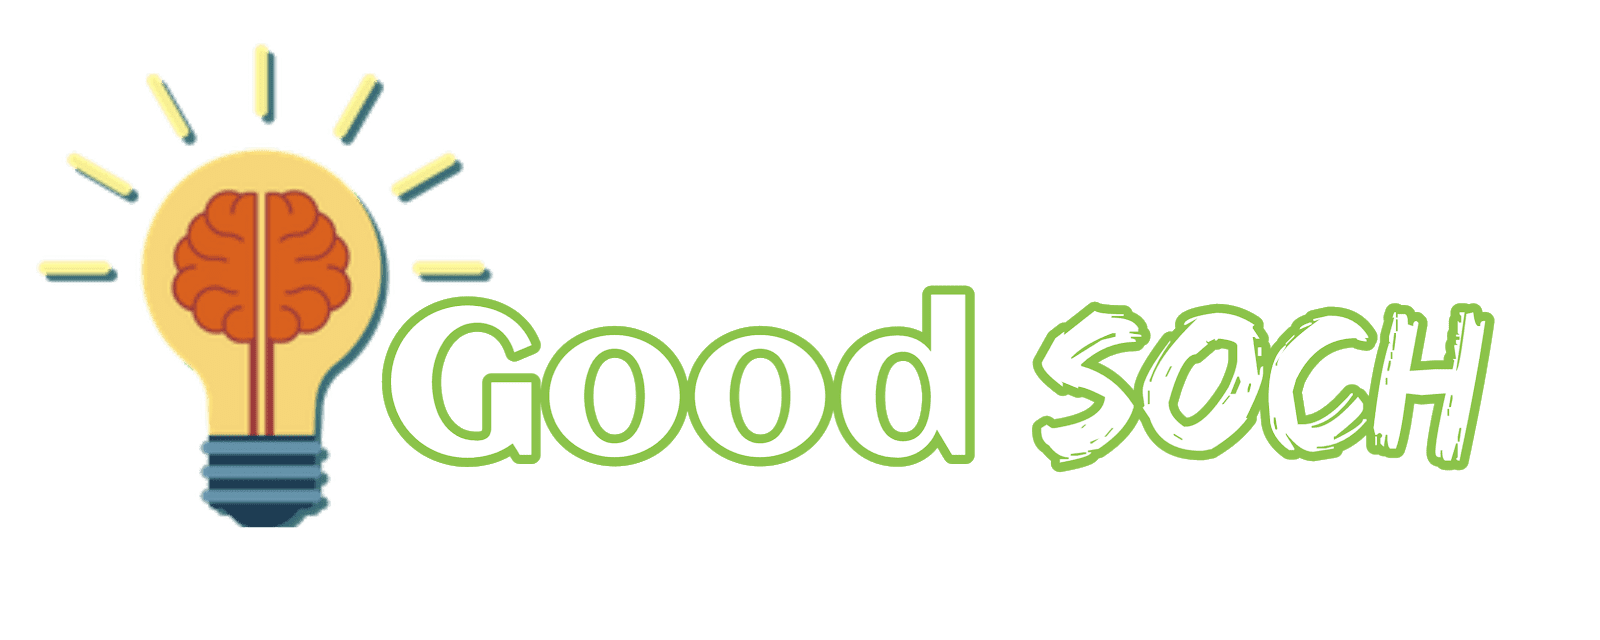 Good Soch - Top Quotes    Best Wishes   Moral Stories in Hindi